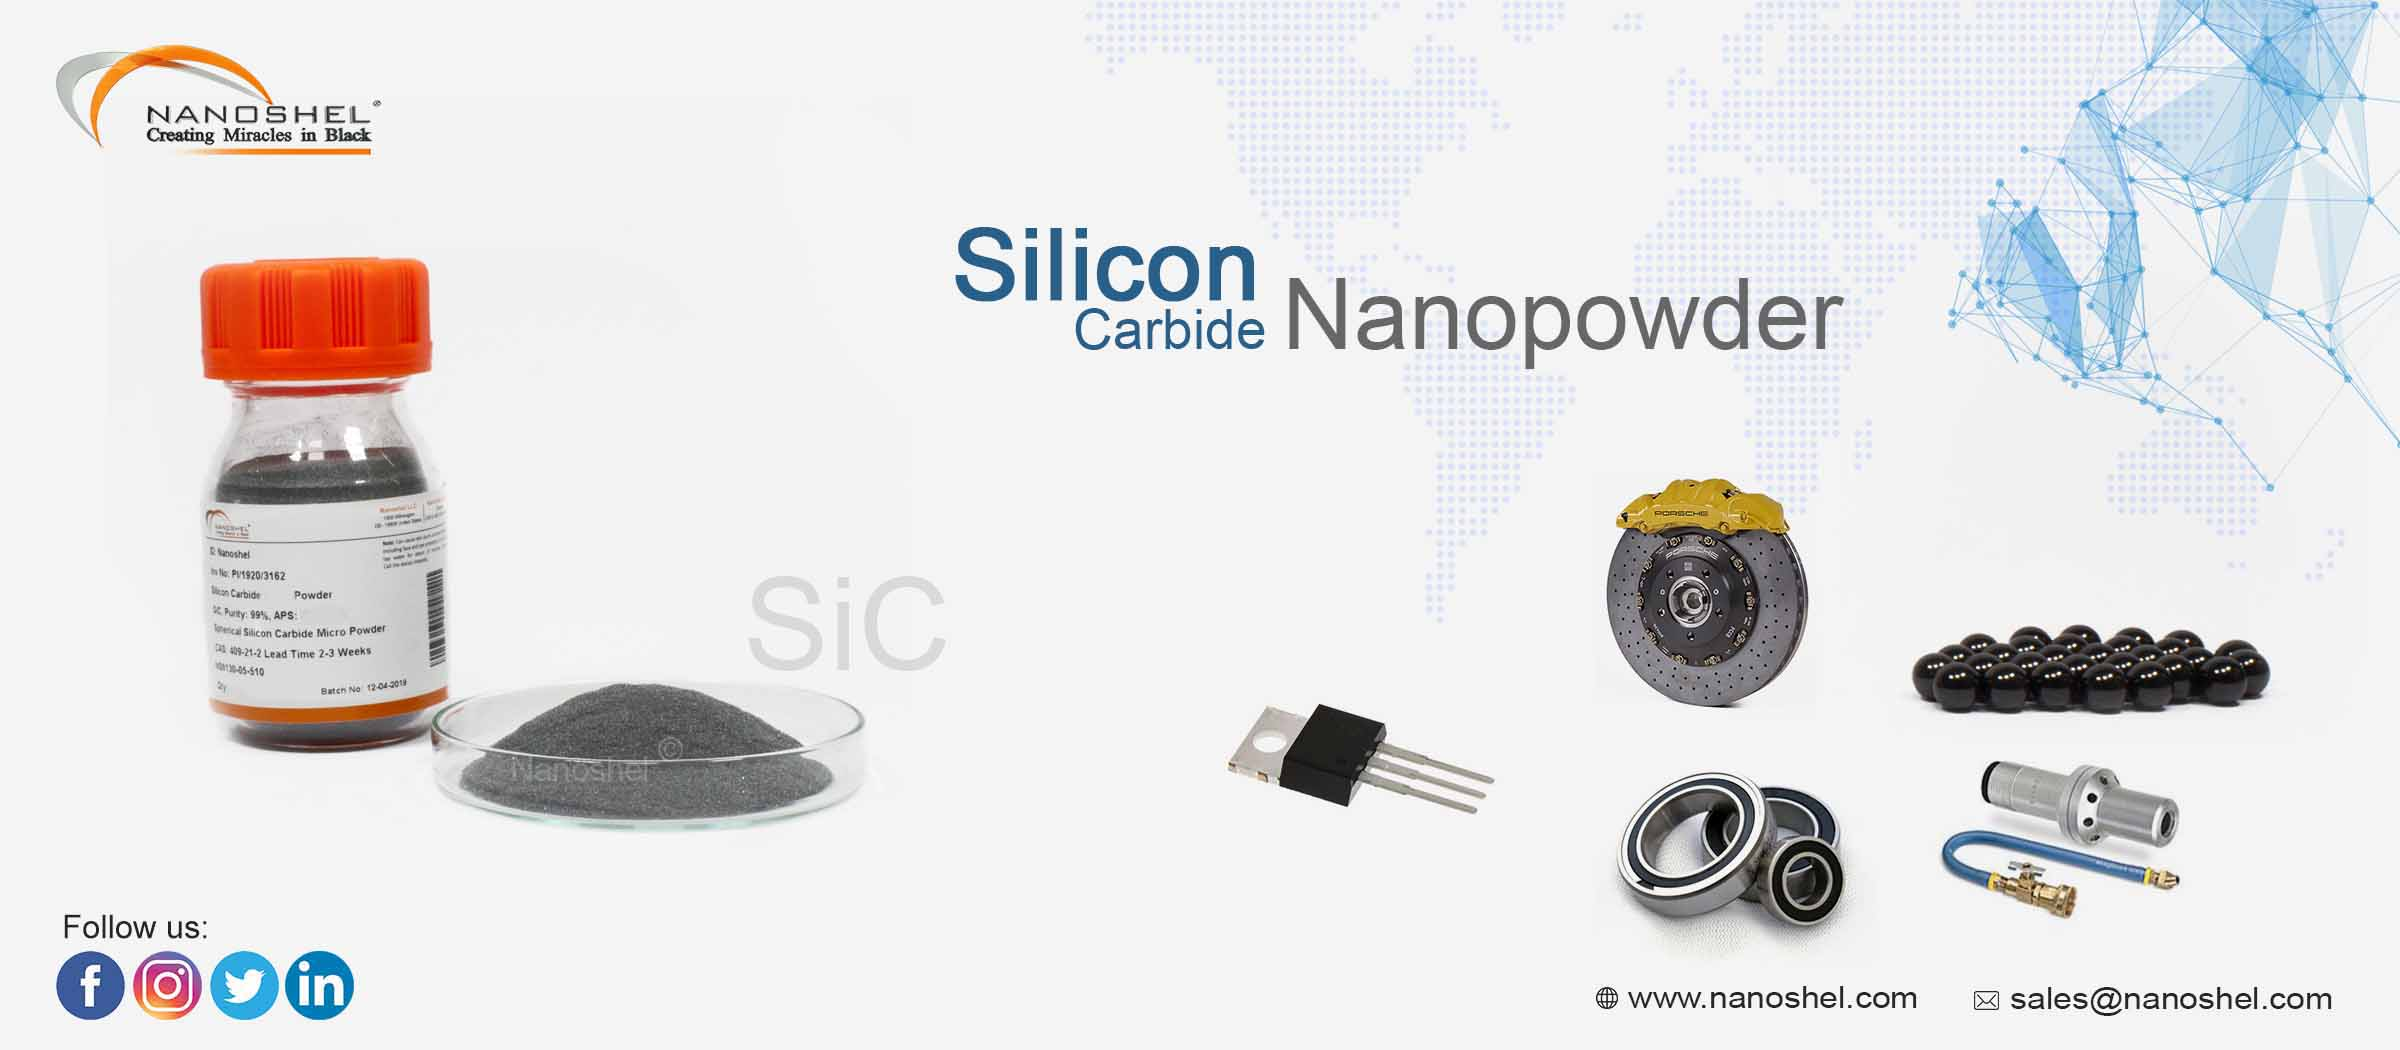 Silicon Carbide Nanoparticles